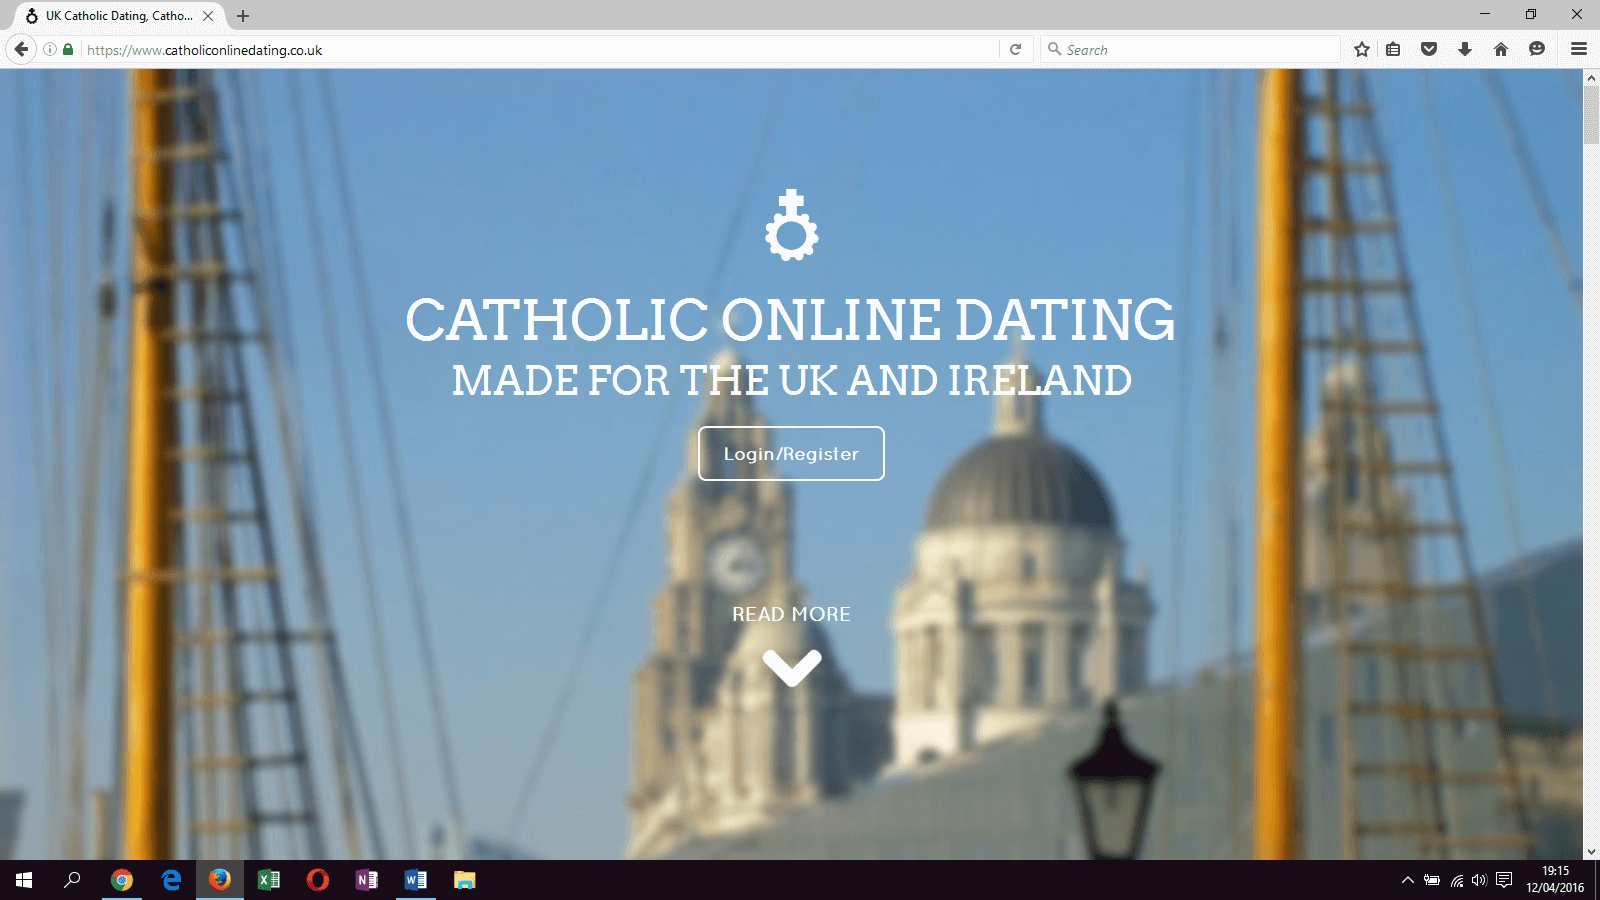 cashton catholic single men You are welcome to join the best dating site for catholic singles if you aim to date men and women of the catholic faith, then you should do so at catholic dating club.